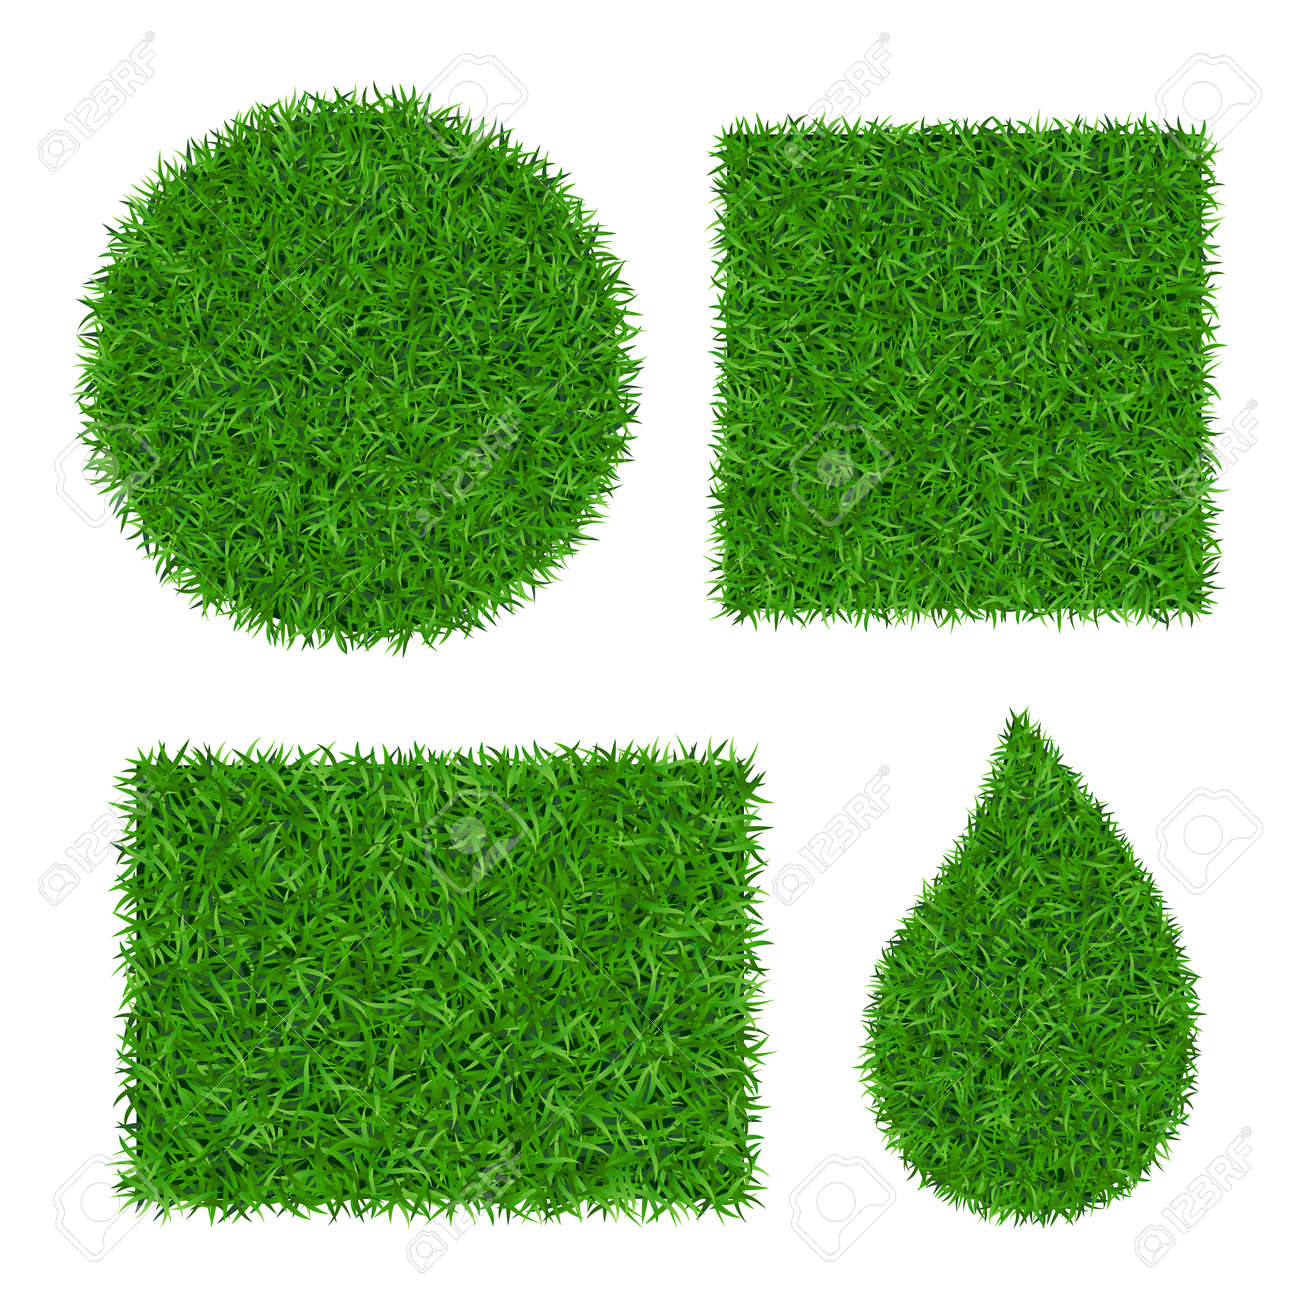 Green grass background 3D set. Lawn greenery nature. Abstract field texture circle, square, rectangle, drop. Ground landscape grassland pattern. Grassy design. Beautiful meadow Vector illustration - 130779402